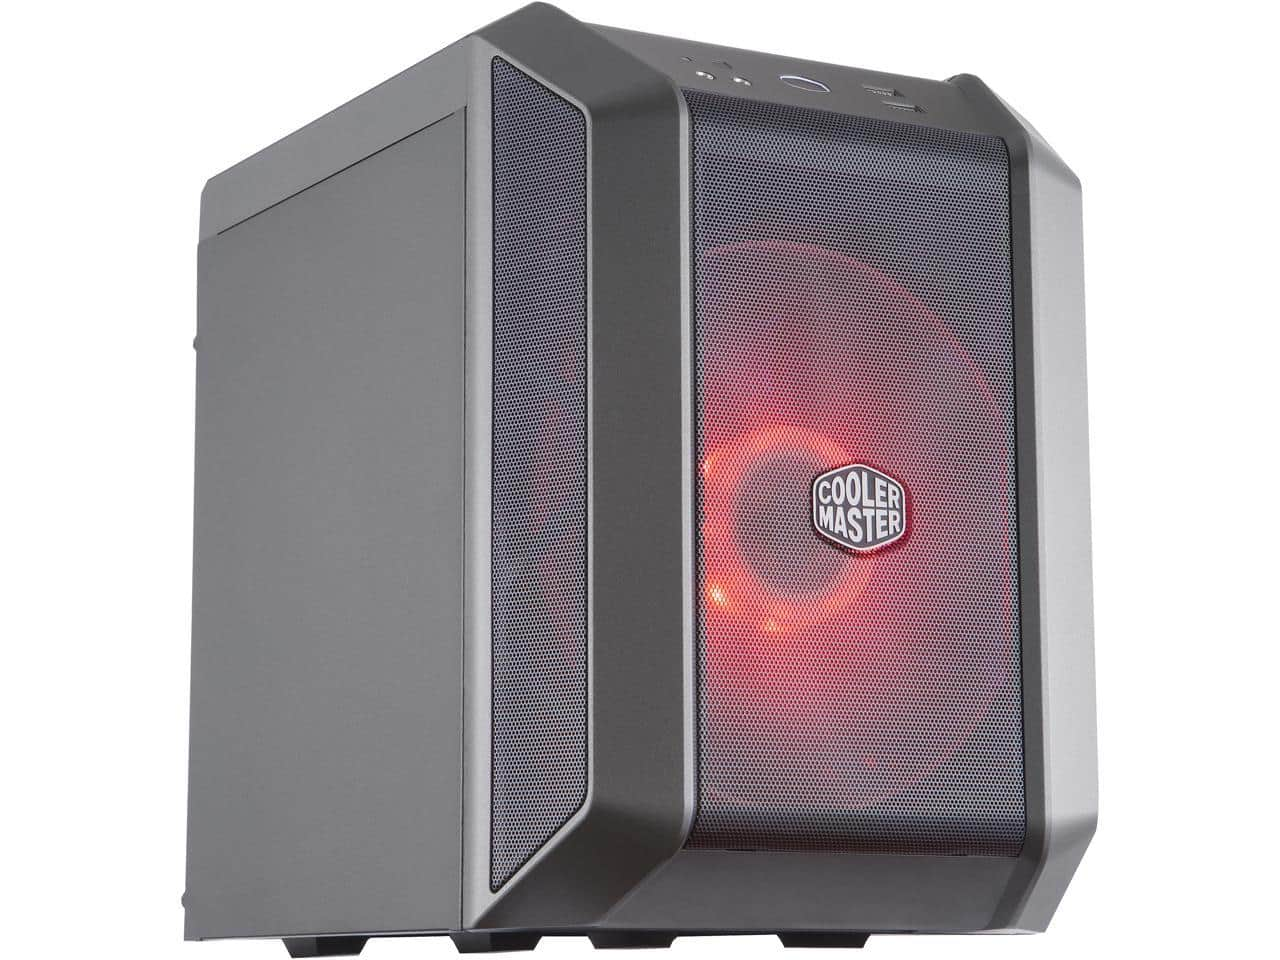 Cooler Master MasterCase H100 Mini-ITX Case w/ 200mm RGB Fan, Mesh Front Panel, Built-In Handle $64.99 @Newegg (AR) $50